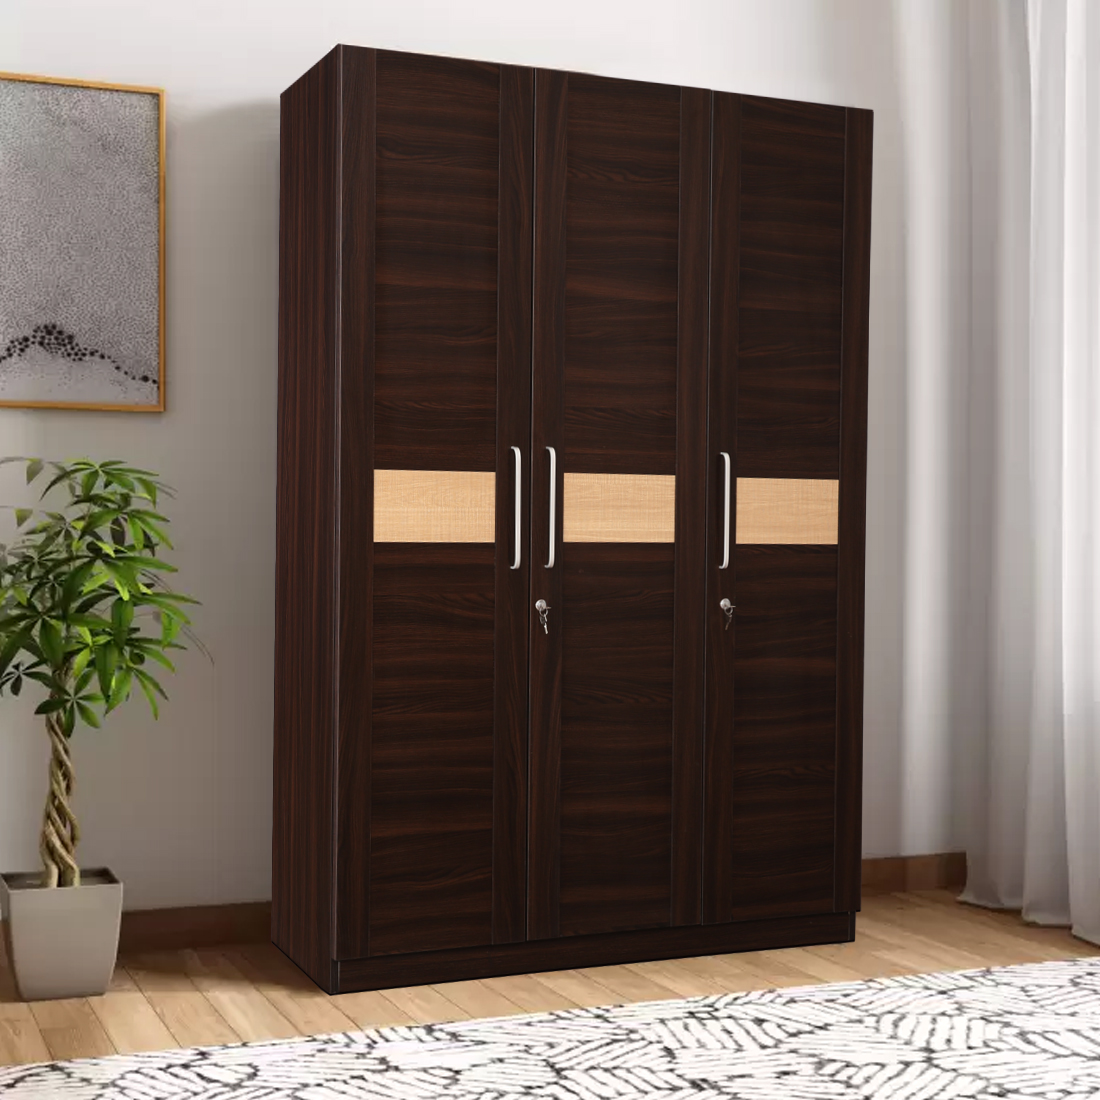 Magnolia Engineered Wood Three Door Wardrobe in Oak Colour by HomeTown